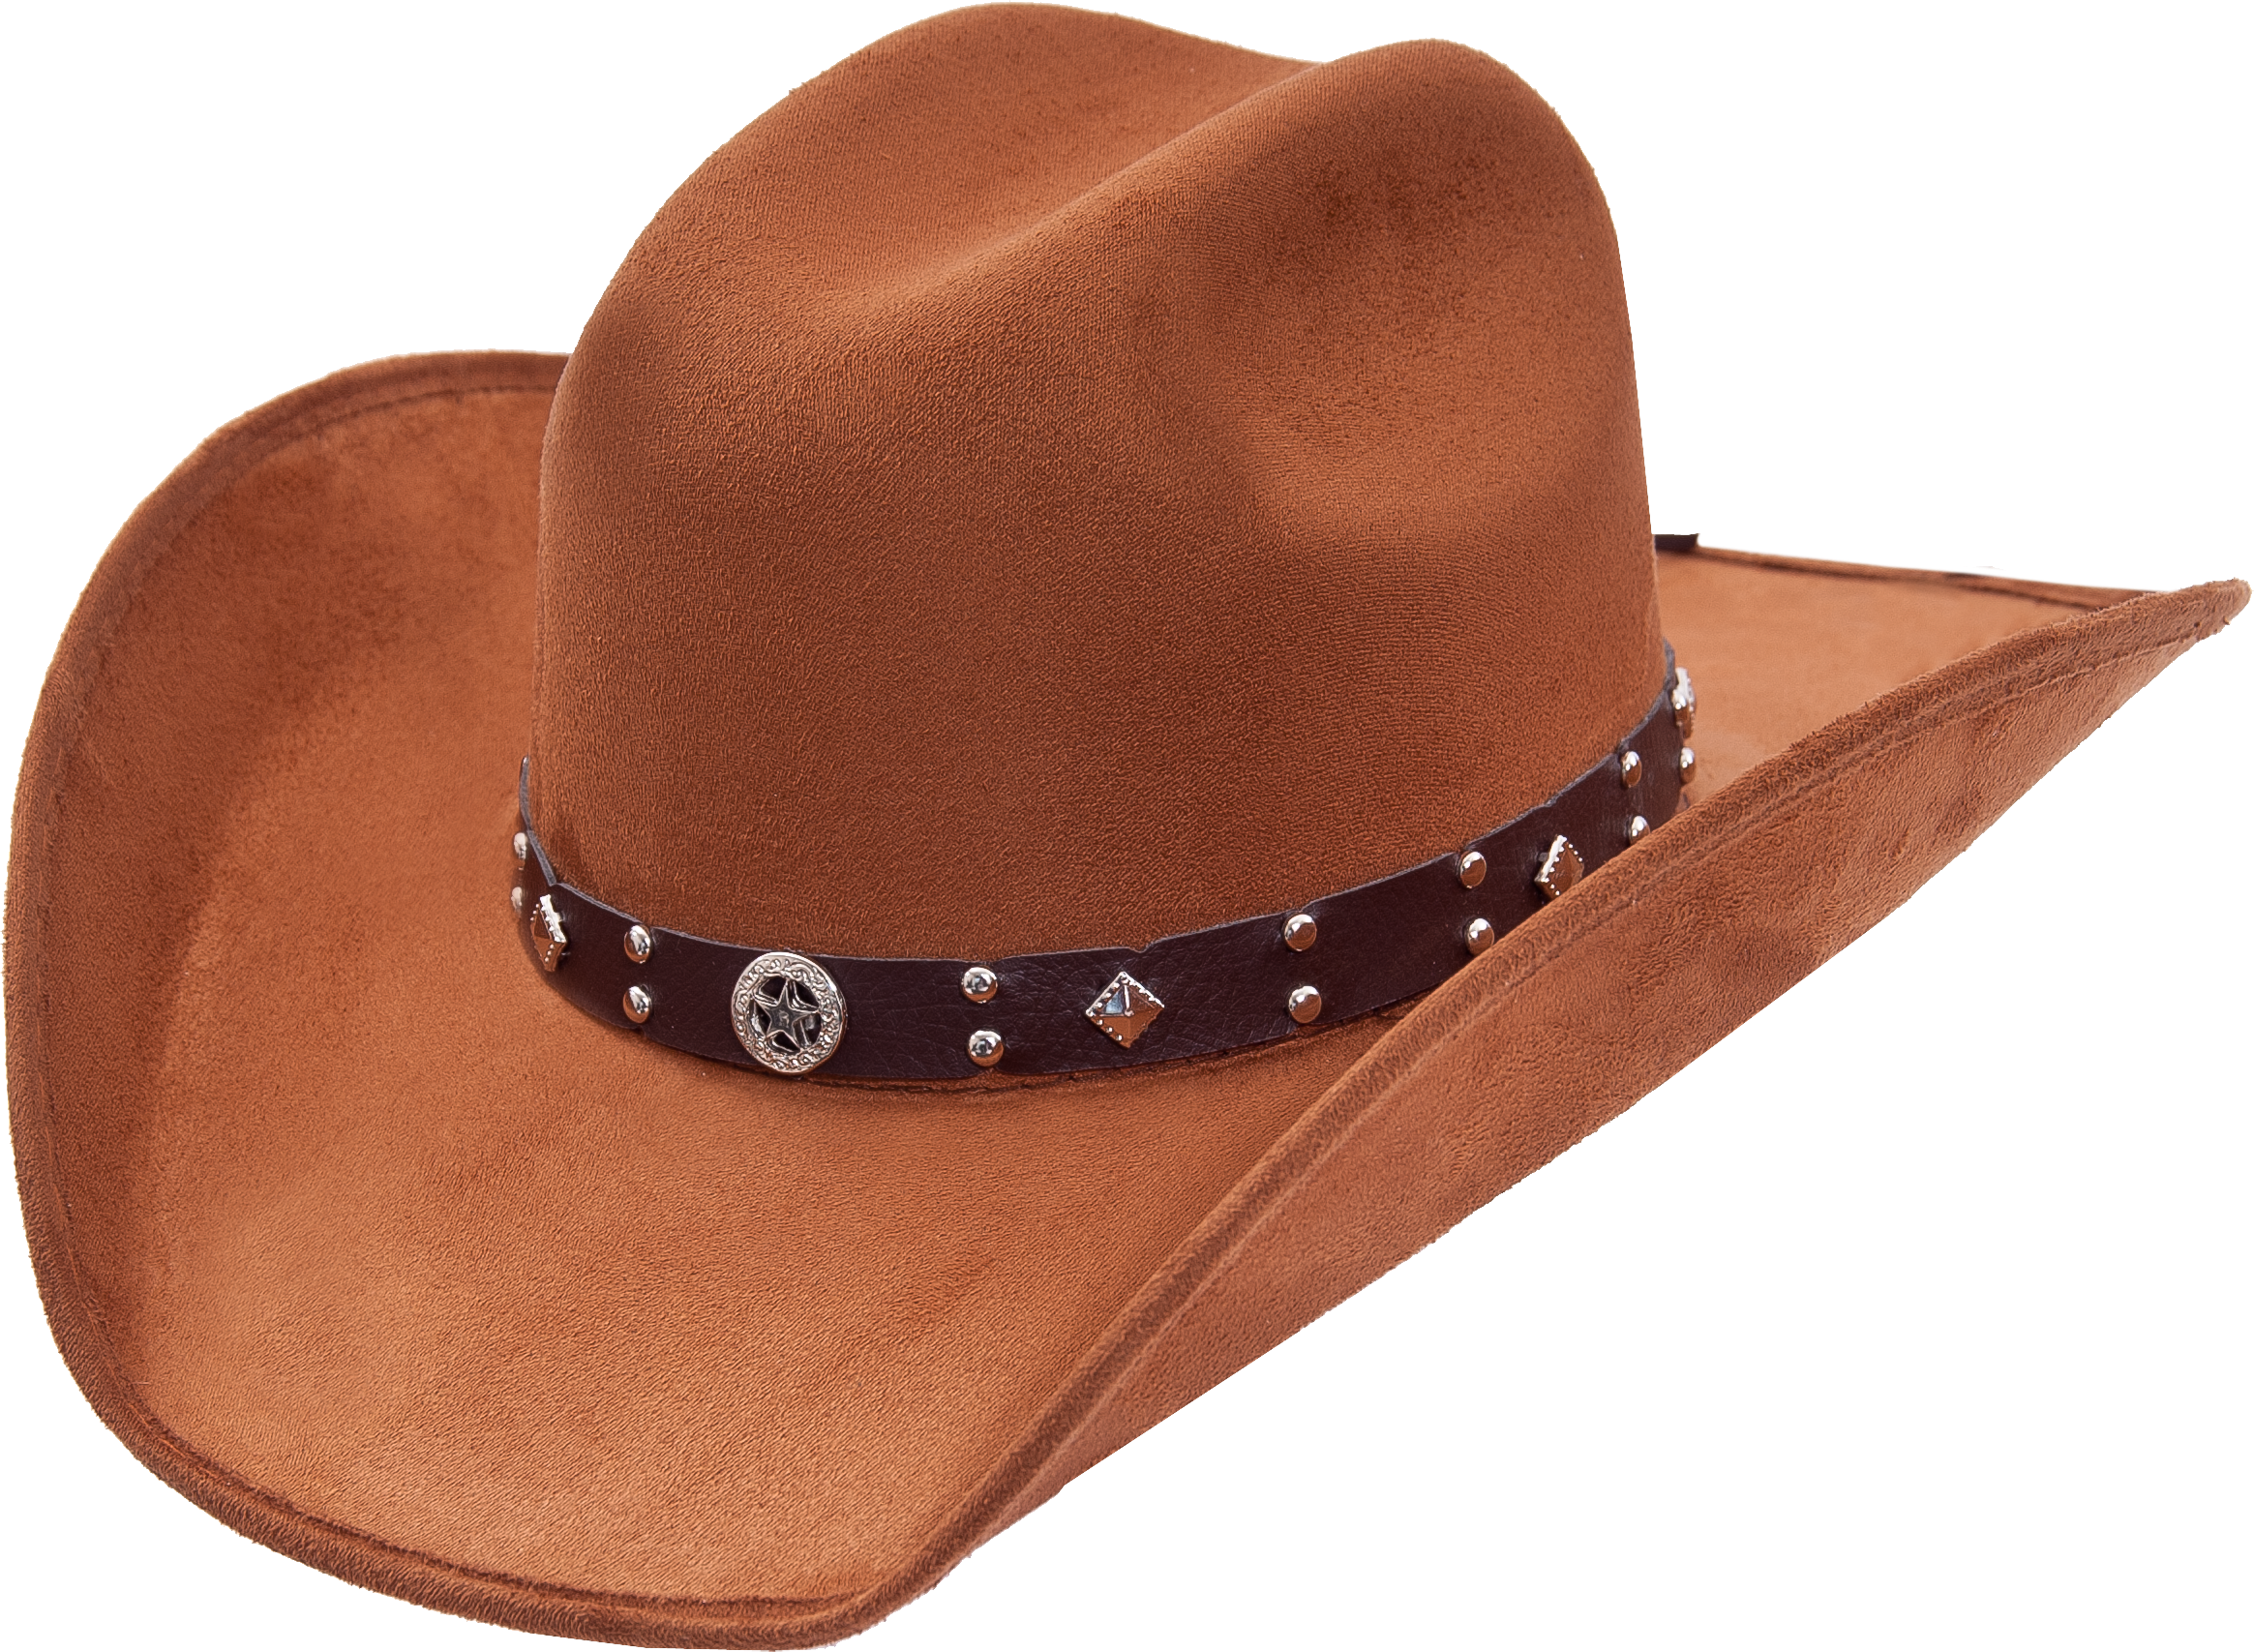 Free Cowboy Hat, Download Free Clip Art, Free Clip Art on.